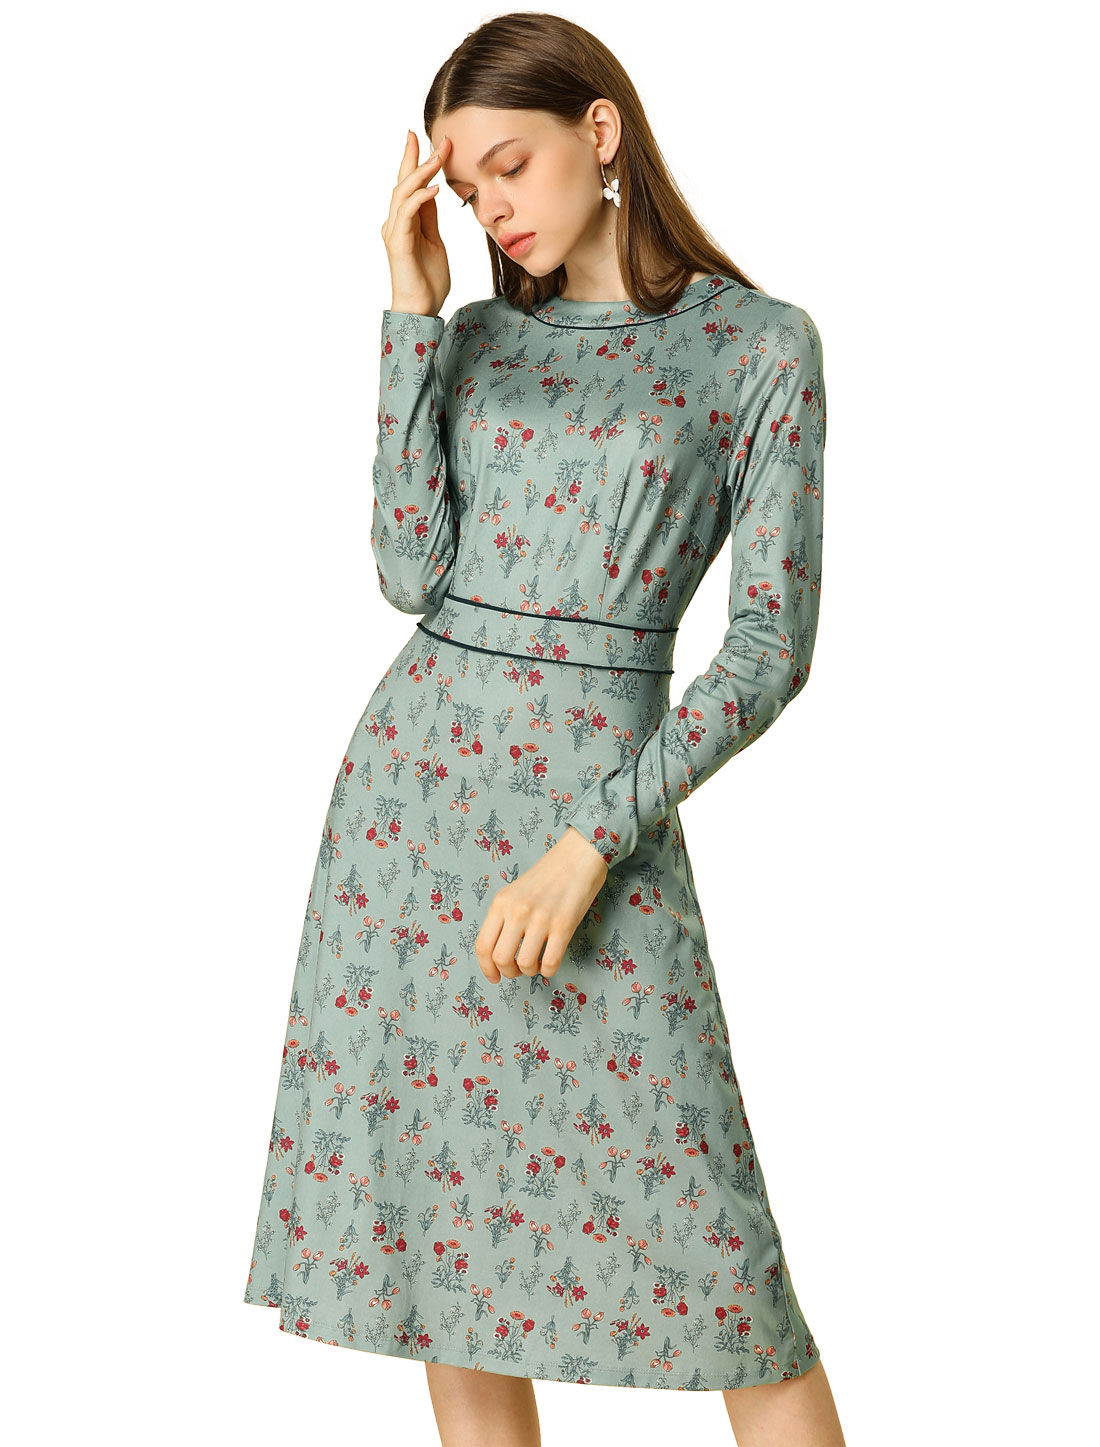 Women's Floral Long Sleeve A-Line Contrast Piped Vintage Dress Green XS